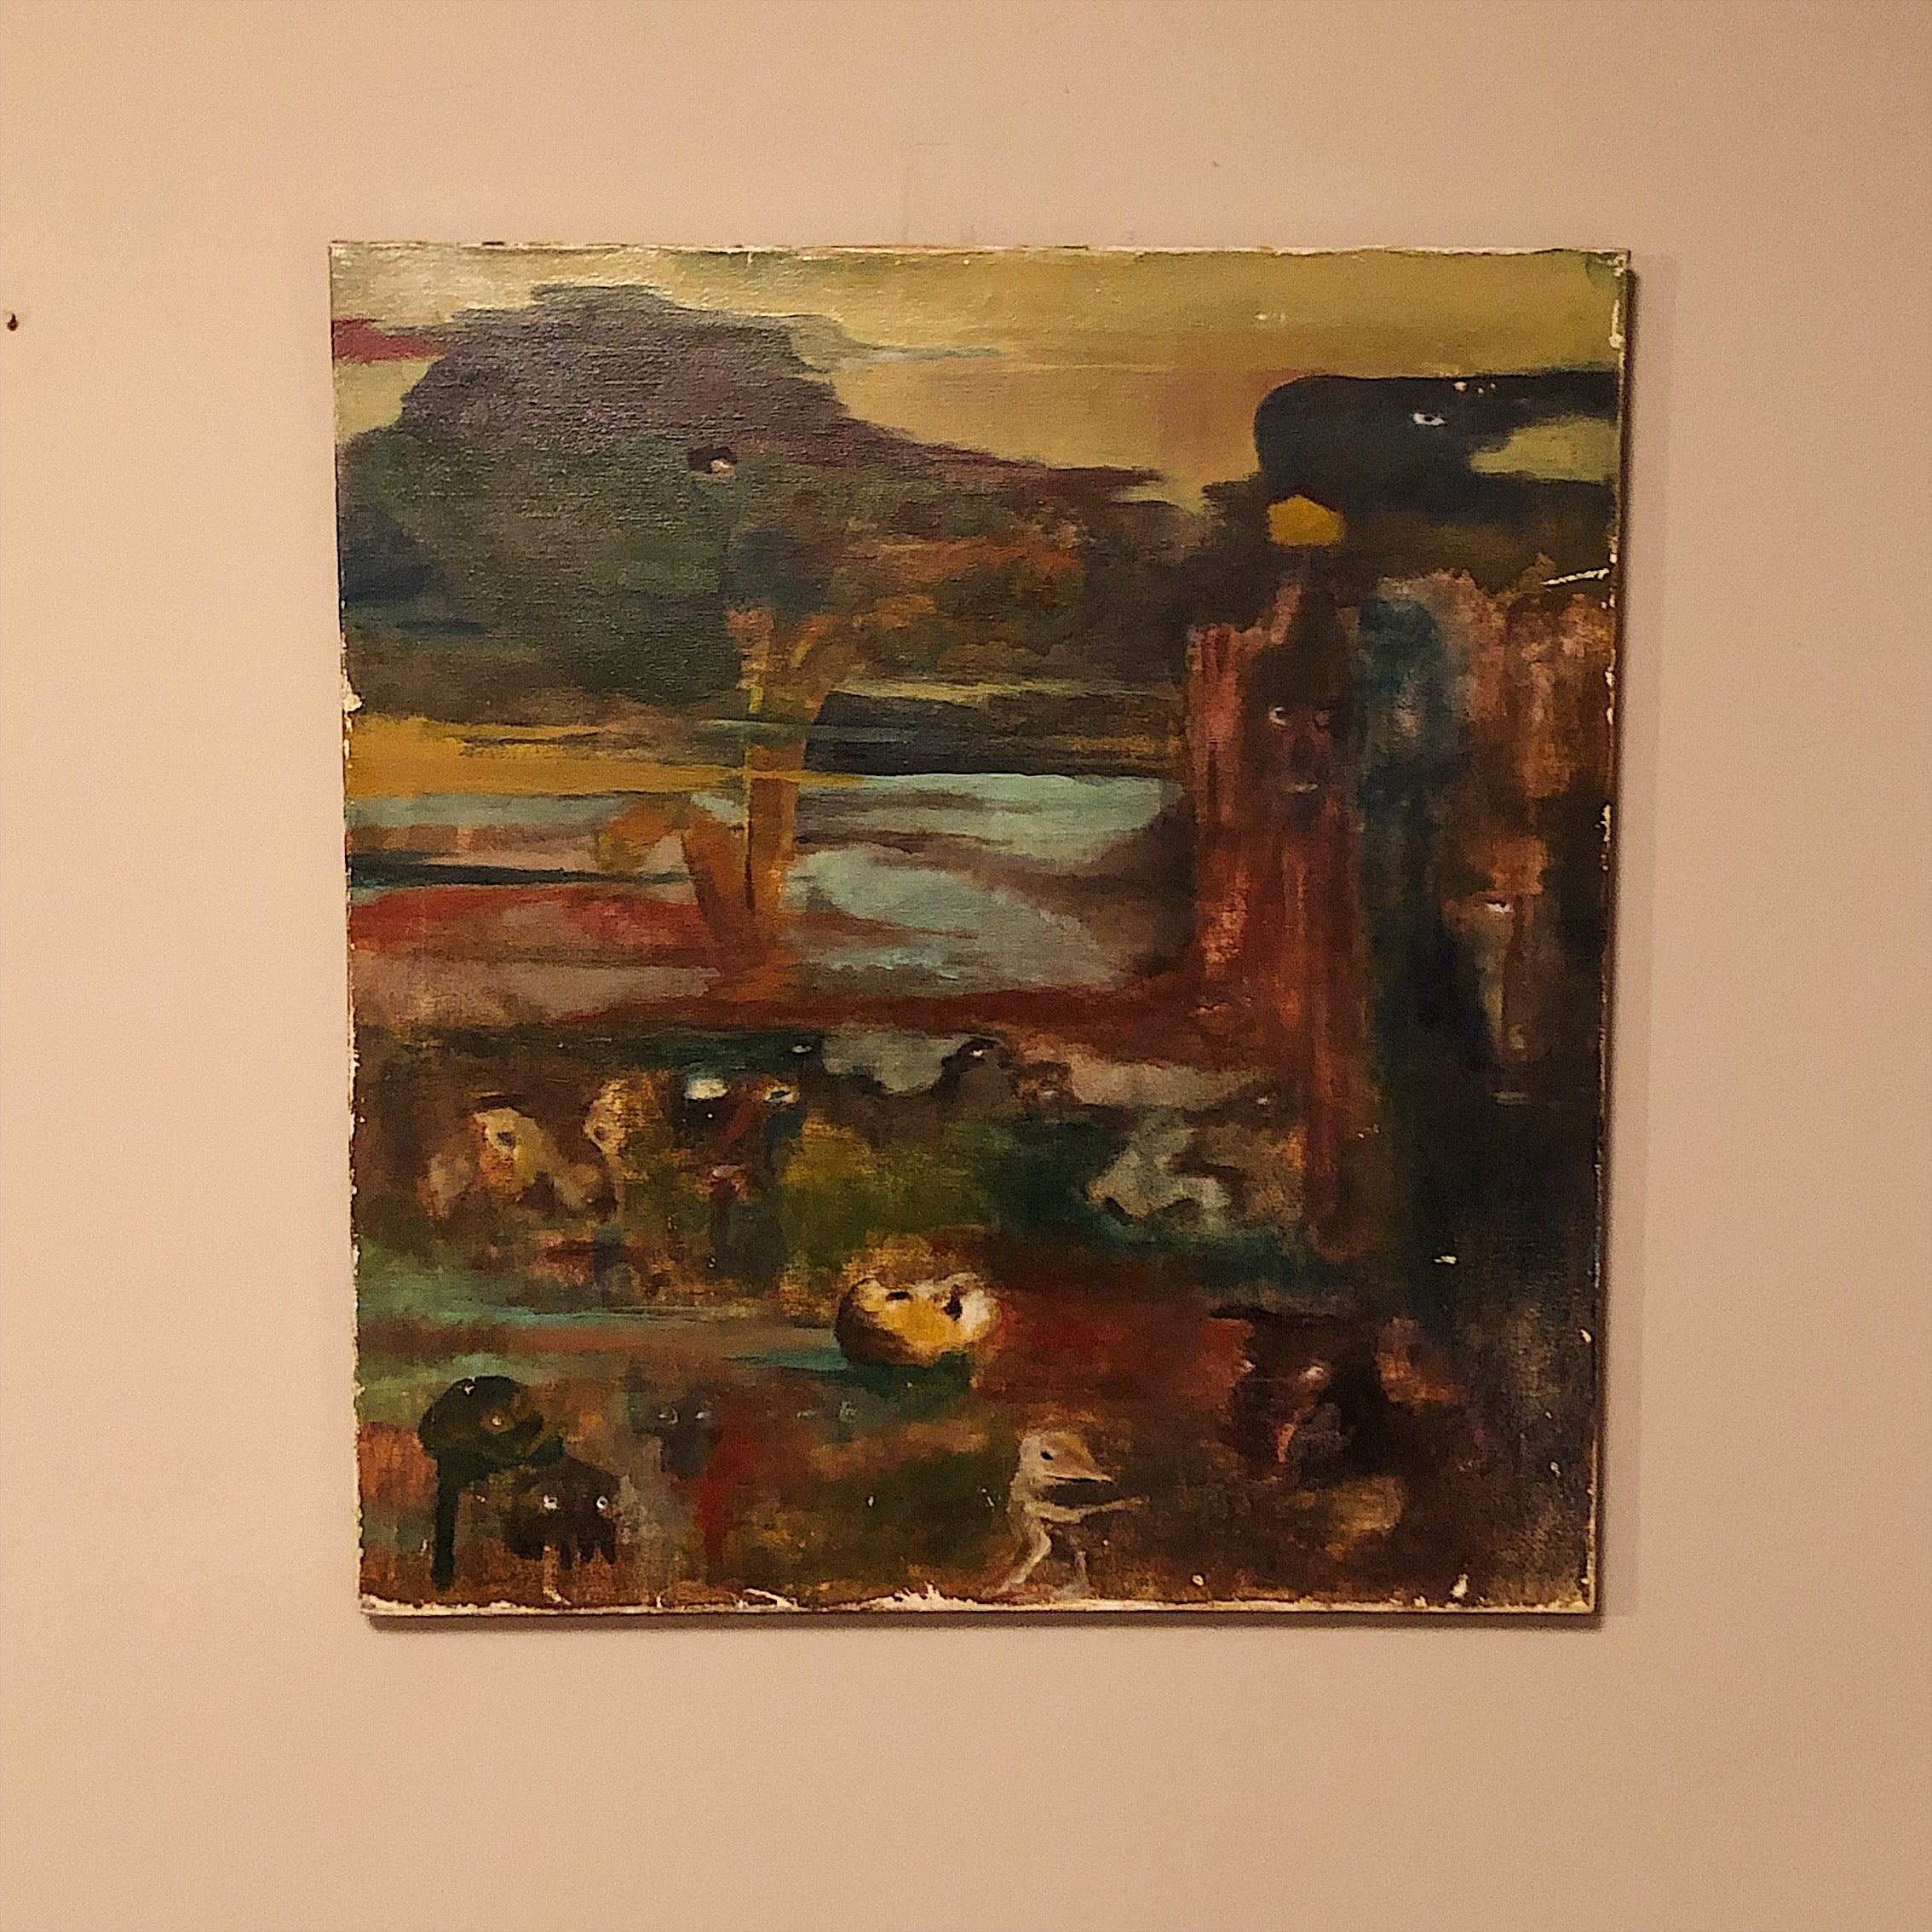 Vintage Surreal Painting from 1960s - Outsider Art - Christopher Charles - Surrealist Landscape Scene - Rare Unusual Artwork